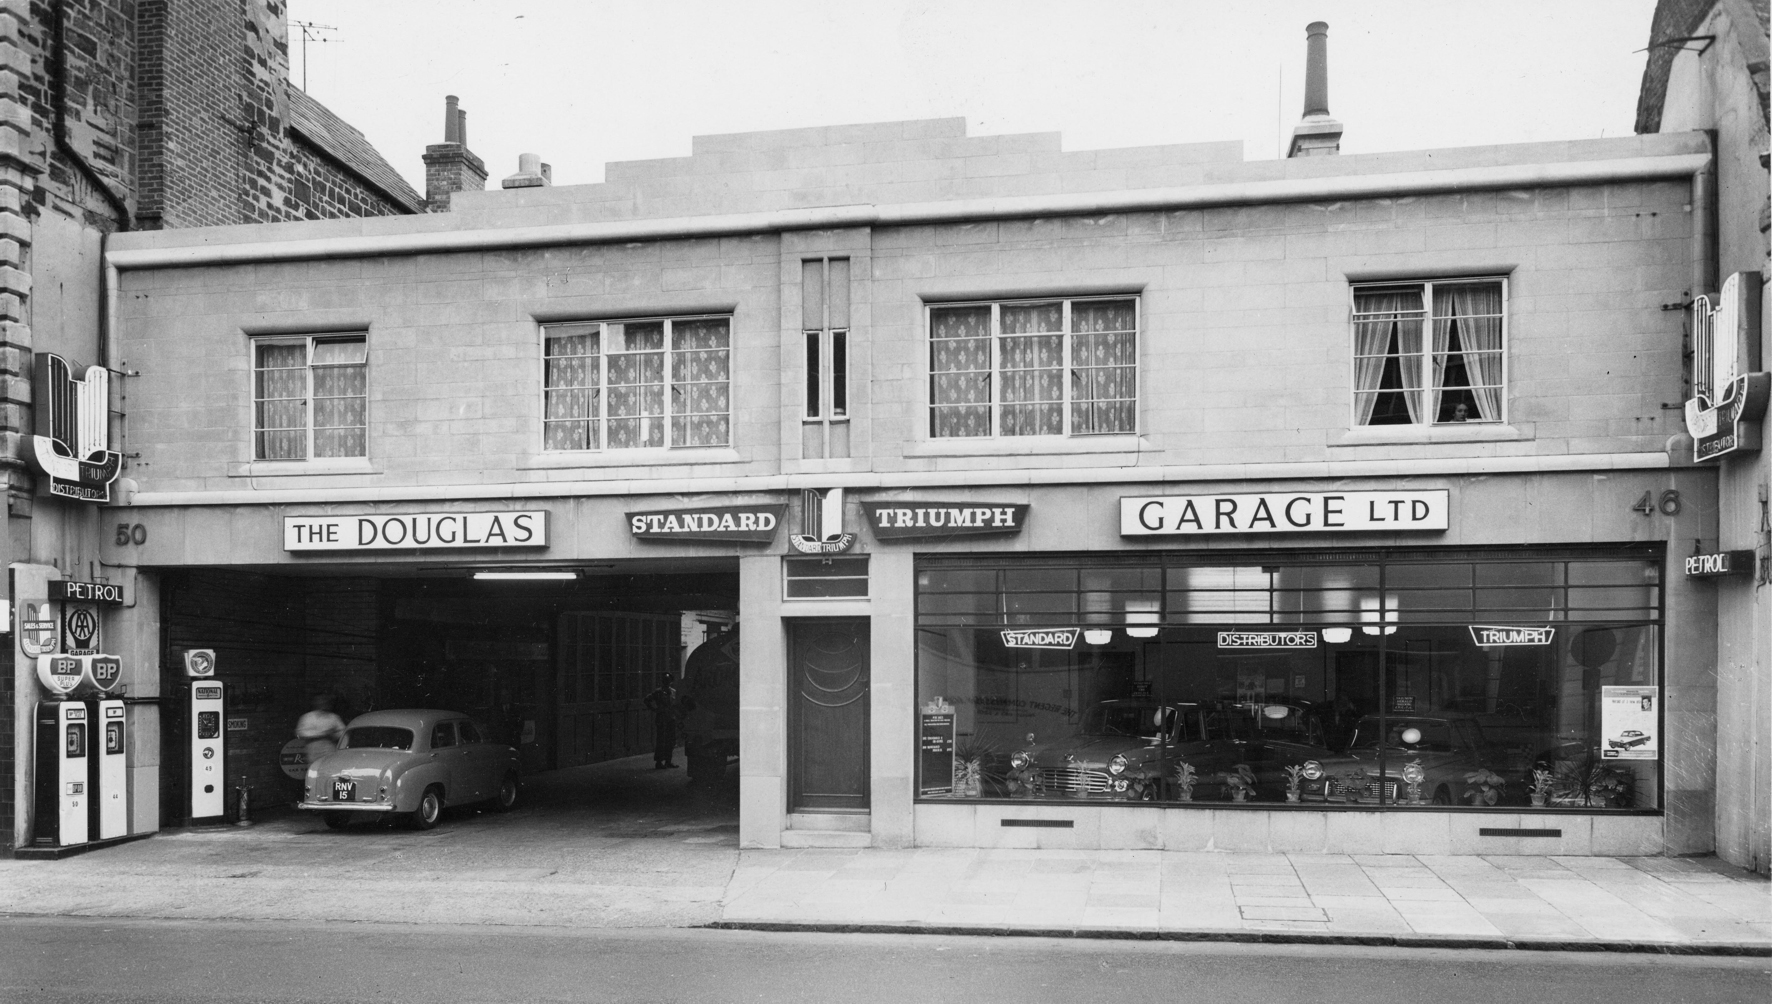 A photo of a car garage. There is an open garage door for cars to enter on the left, and a glass showroom window on the right. Fuel pumps can be seen on the far left, and there is a second story above the garage. The building is elegant and features art deco ornamentation.